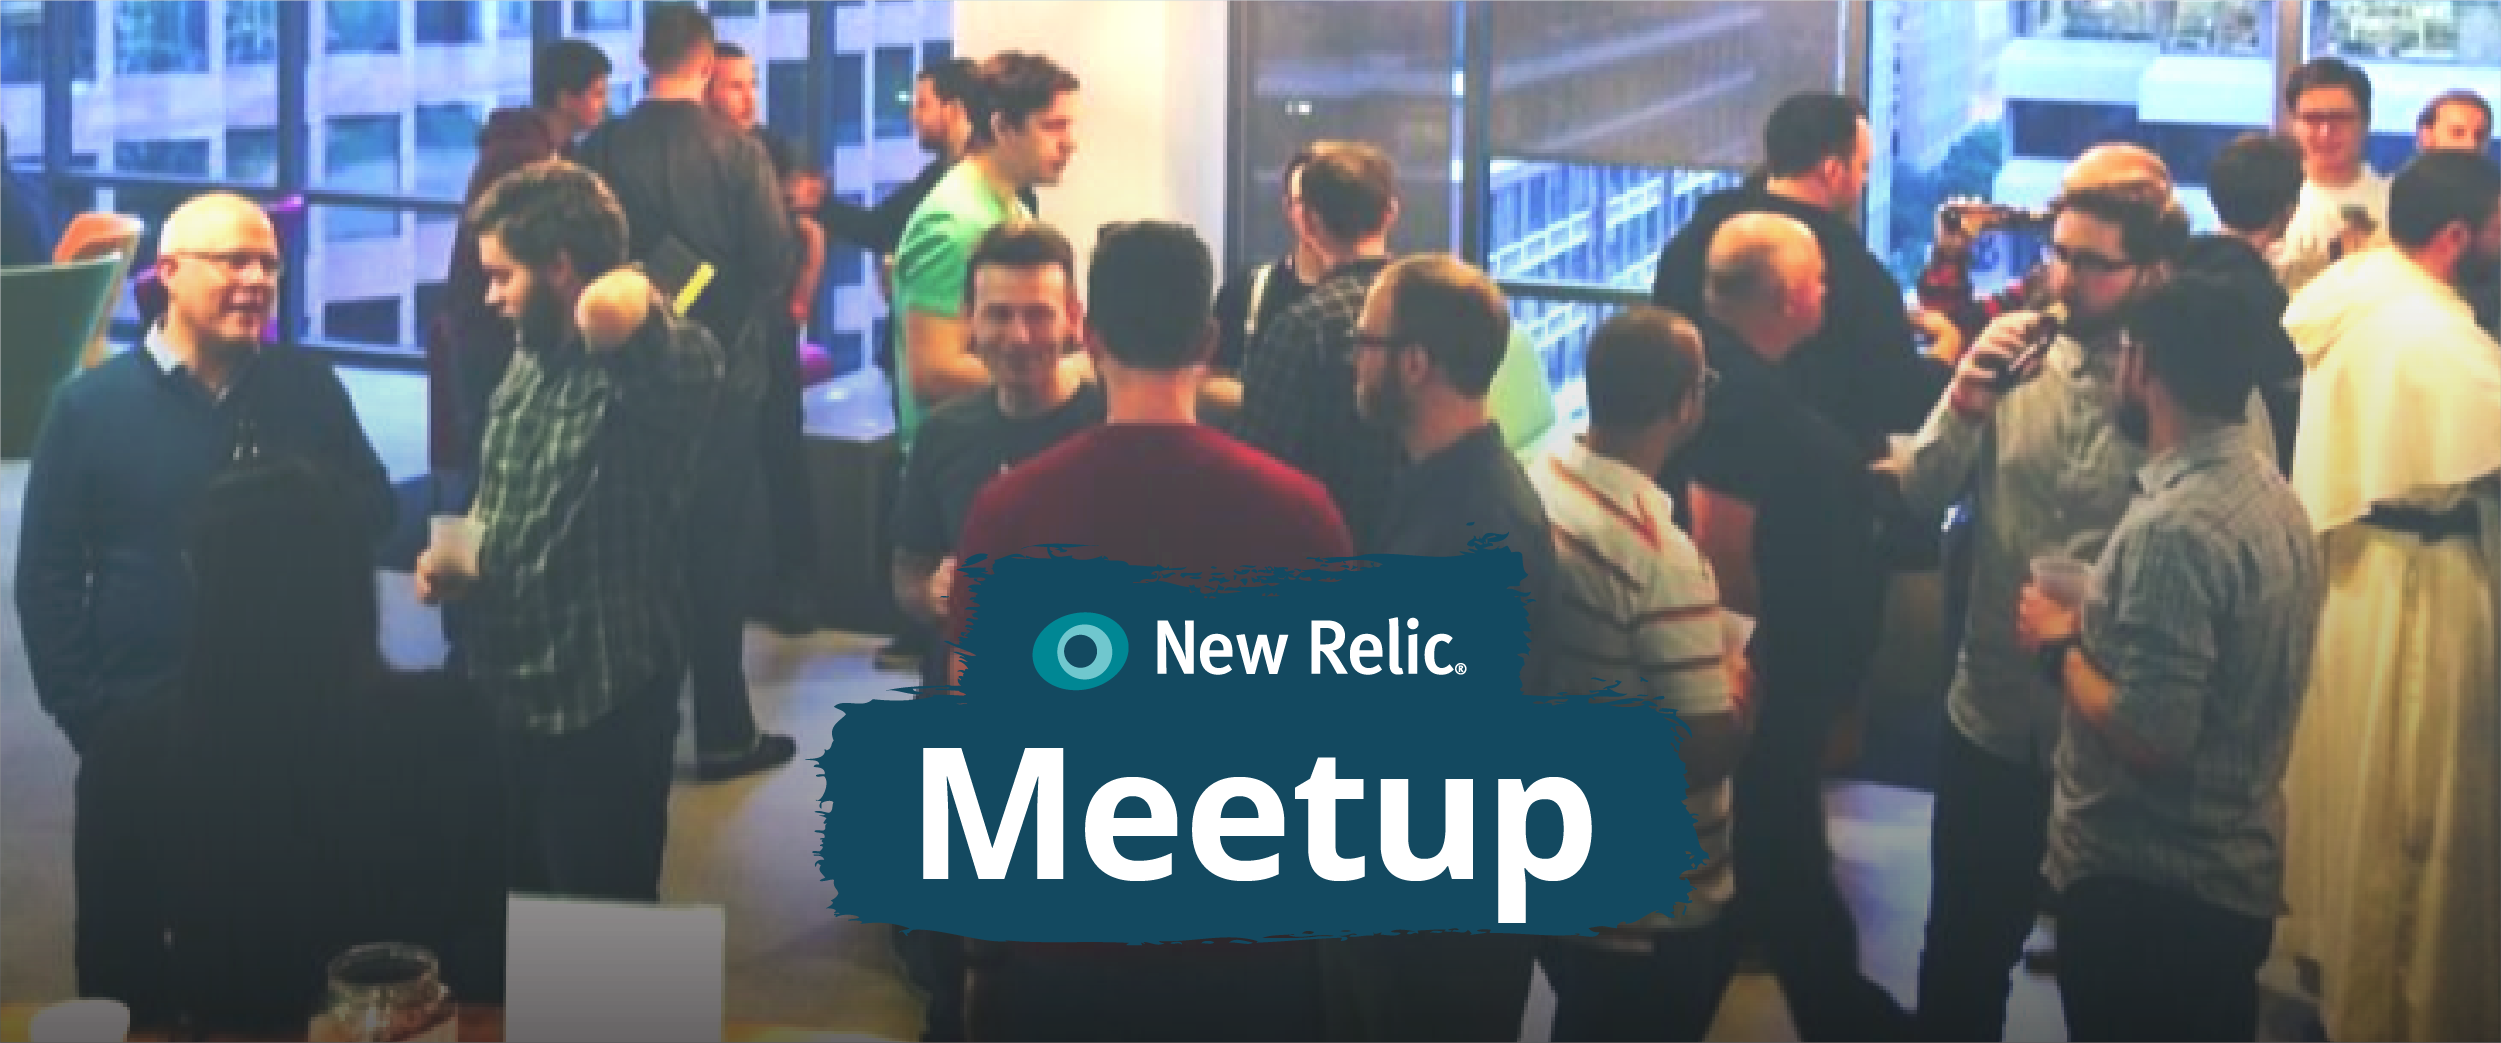 New Relic Meetup Group, EMEA